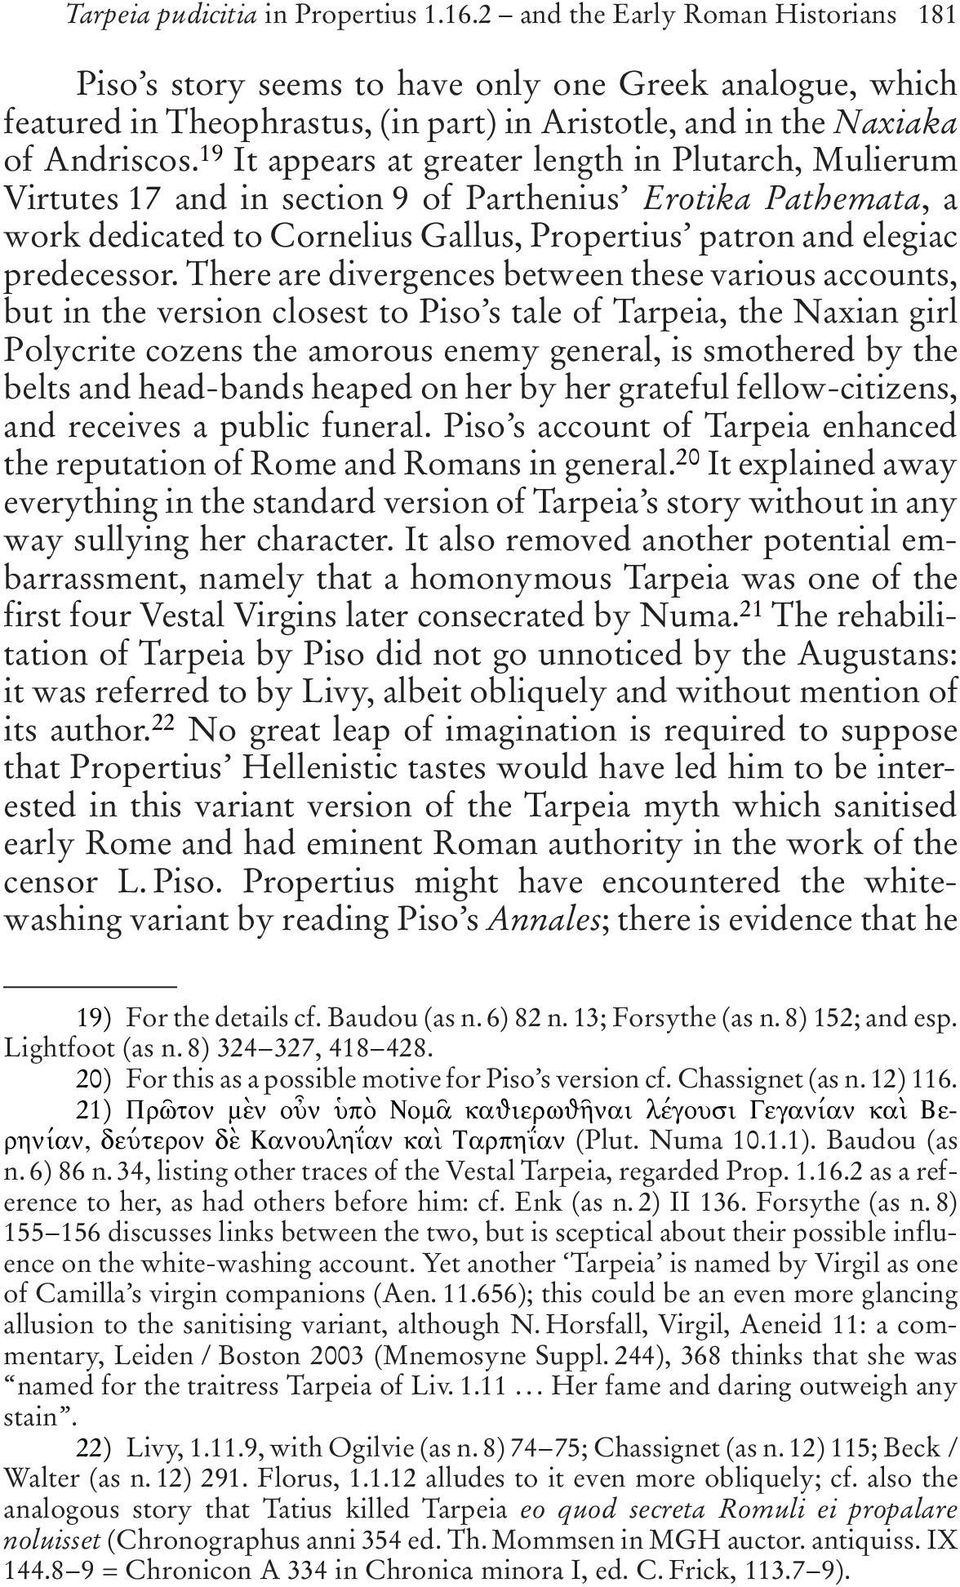 19 It appears at greater length in Plutarch, Mulierum Virtutes 17 and in section 9 of Parthenius Erotika Pathemata, a work dedicated to Cornelius Gallus, Propertius patron and elegiac predecessor.